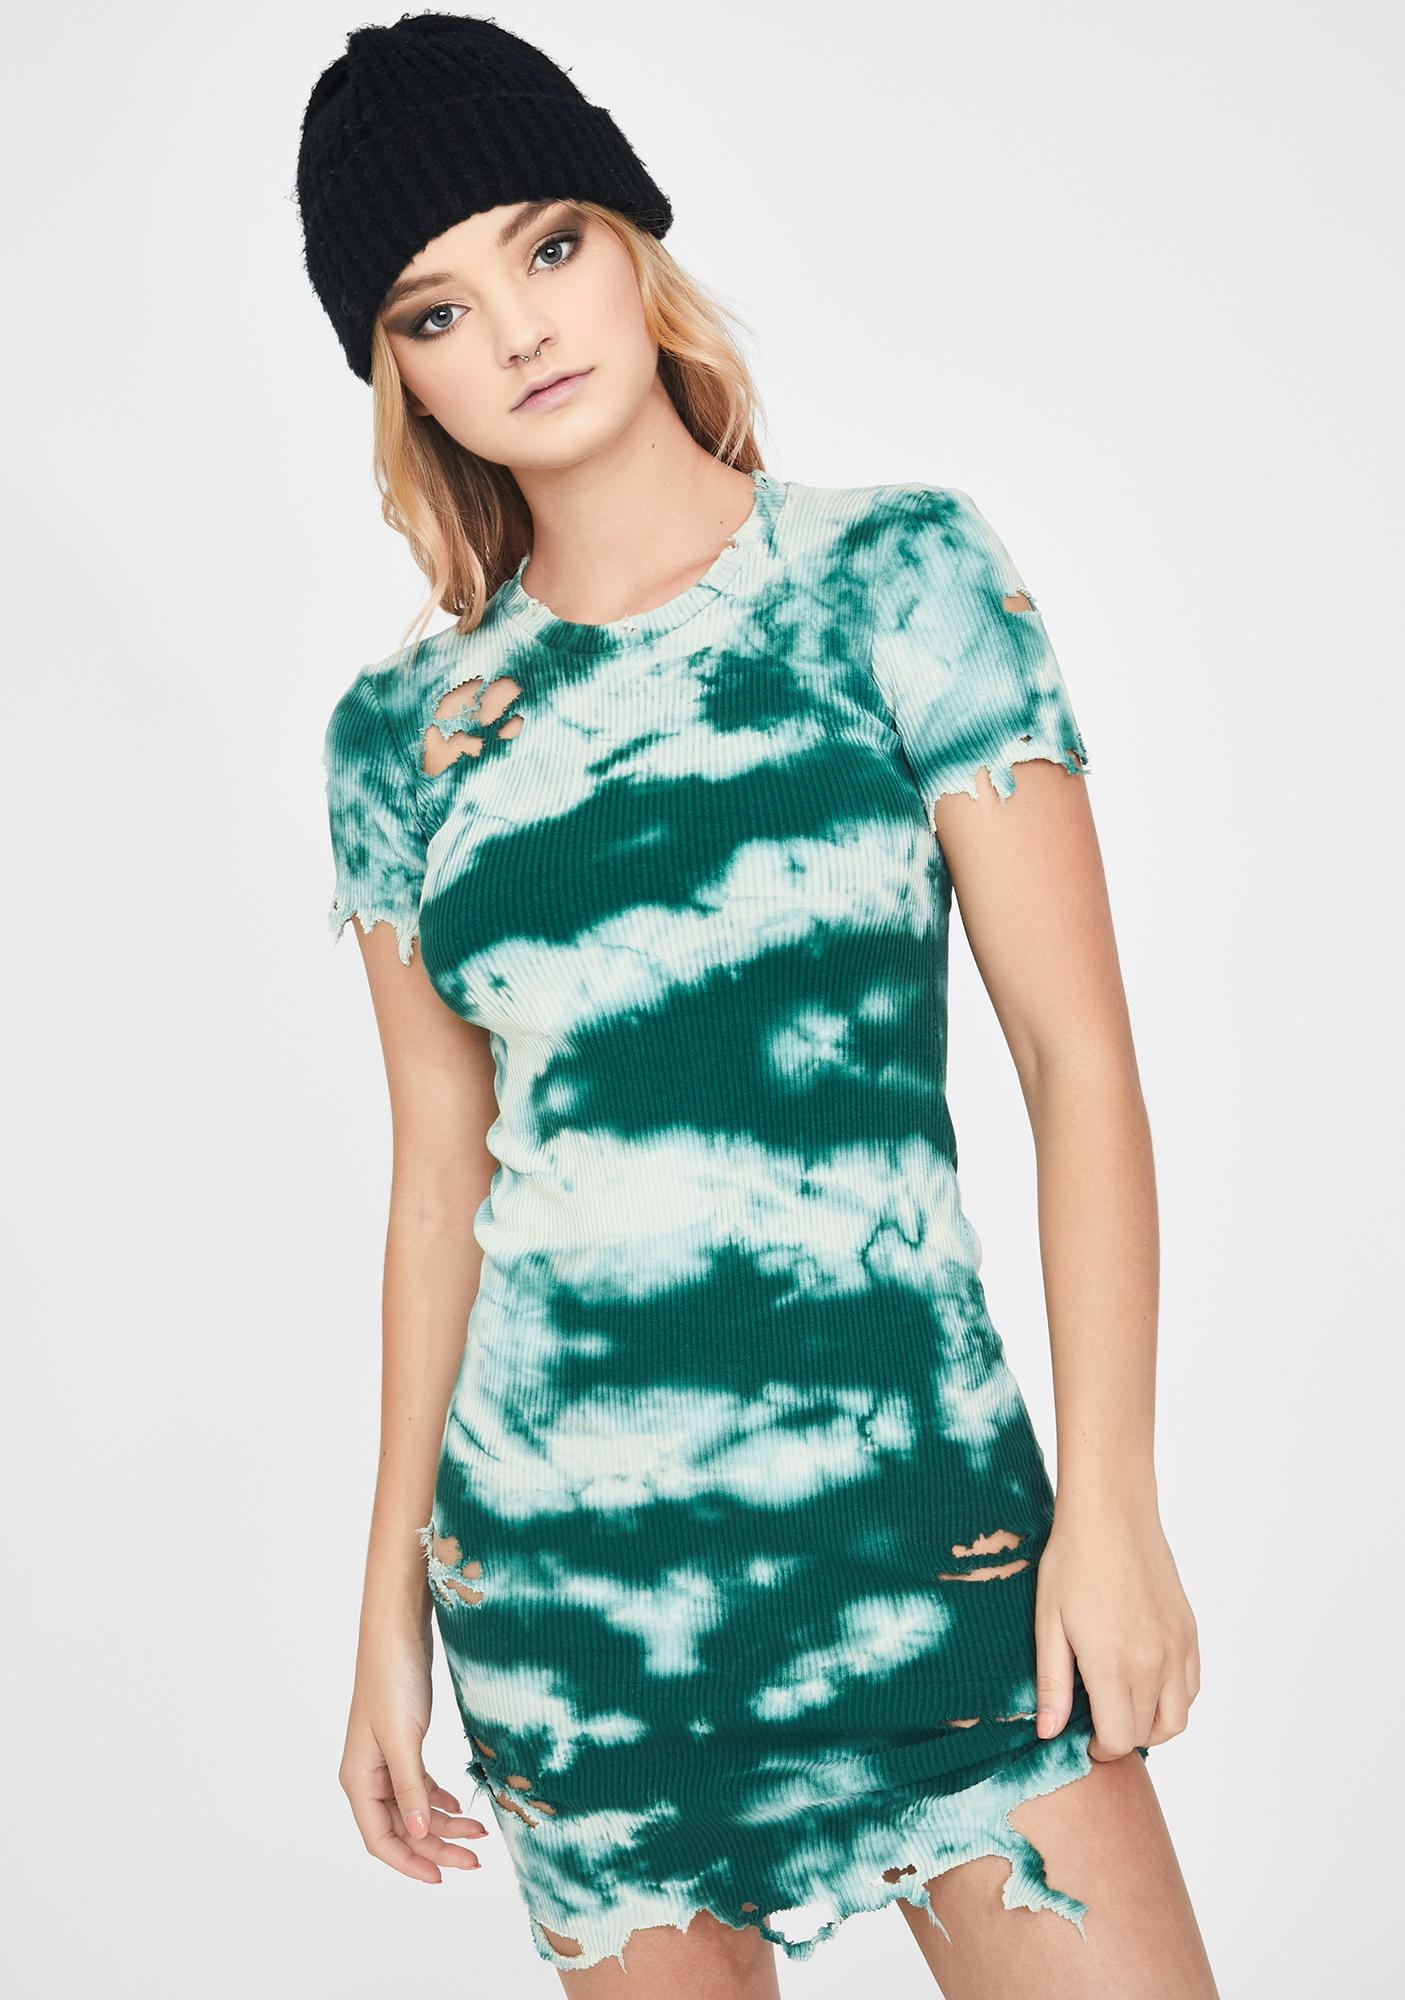 Kiki Riki Euphoric Envy Tie Dye Dress